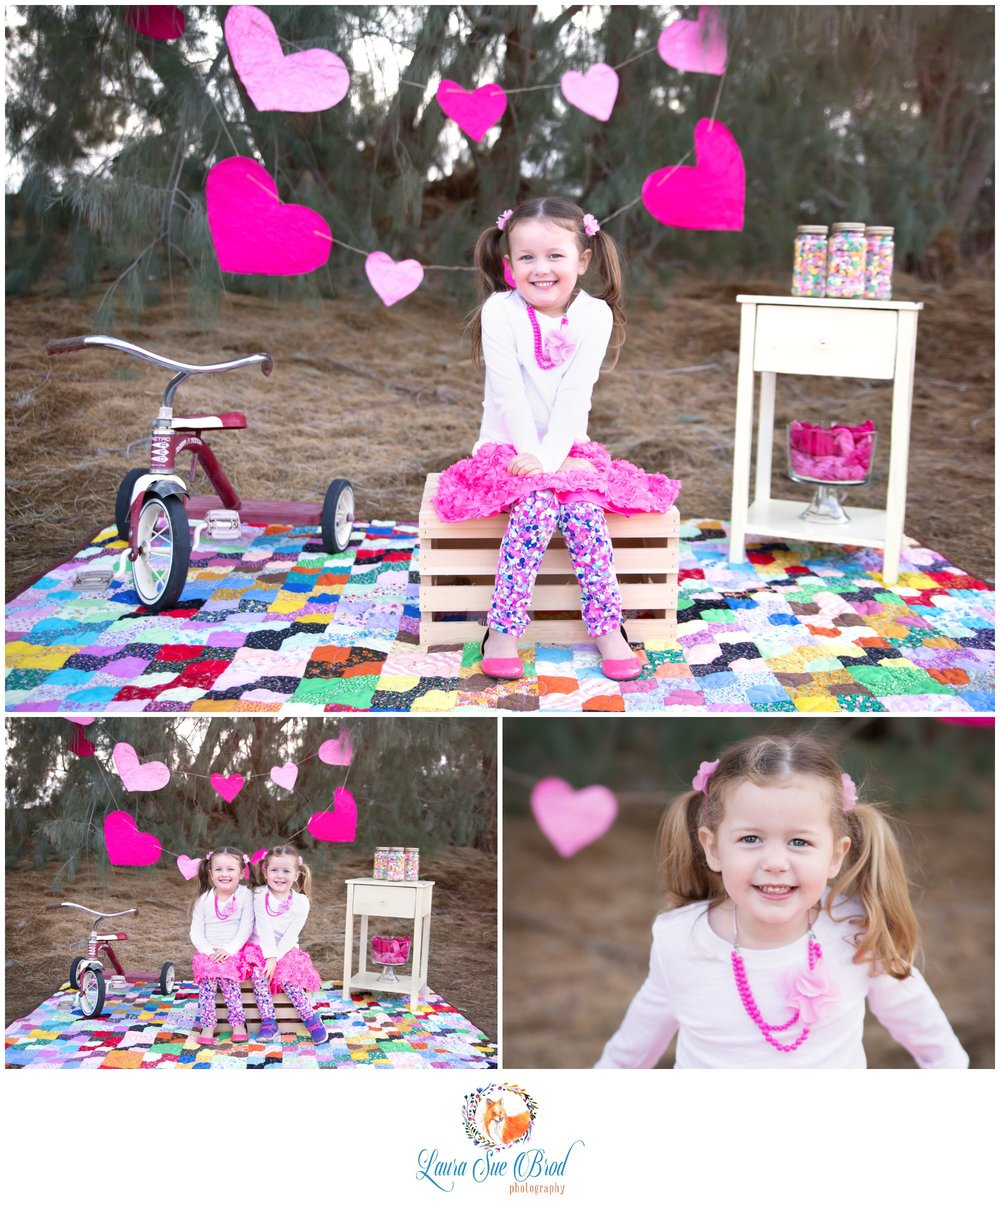 Valentine Mini-Sessions.    Laura Sue Brod Photography - 2016  www.laurasuebrod.com